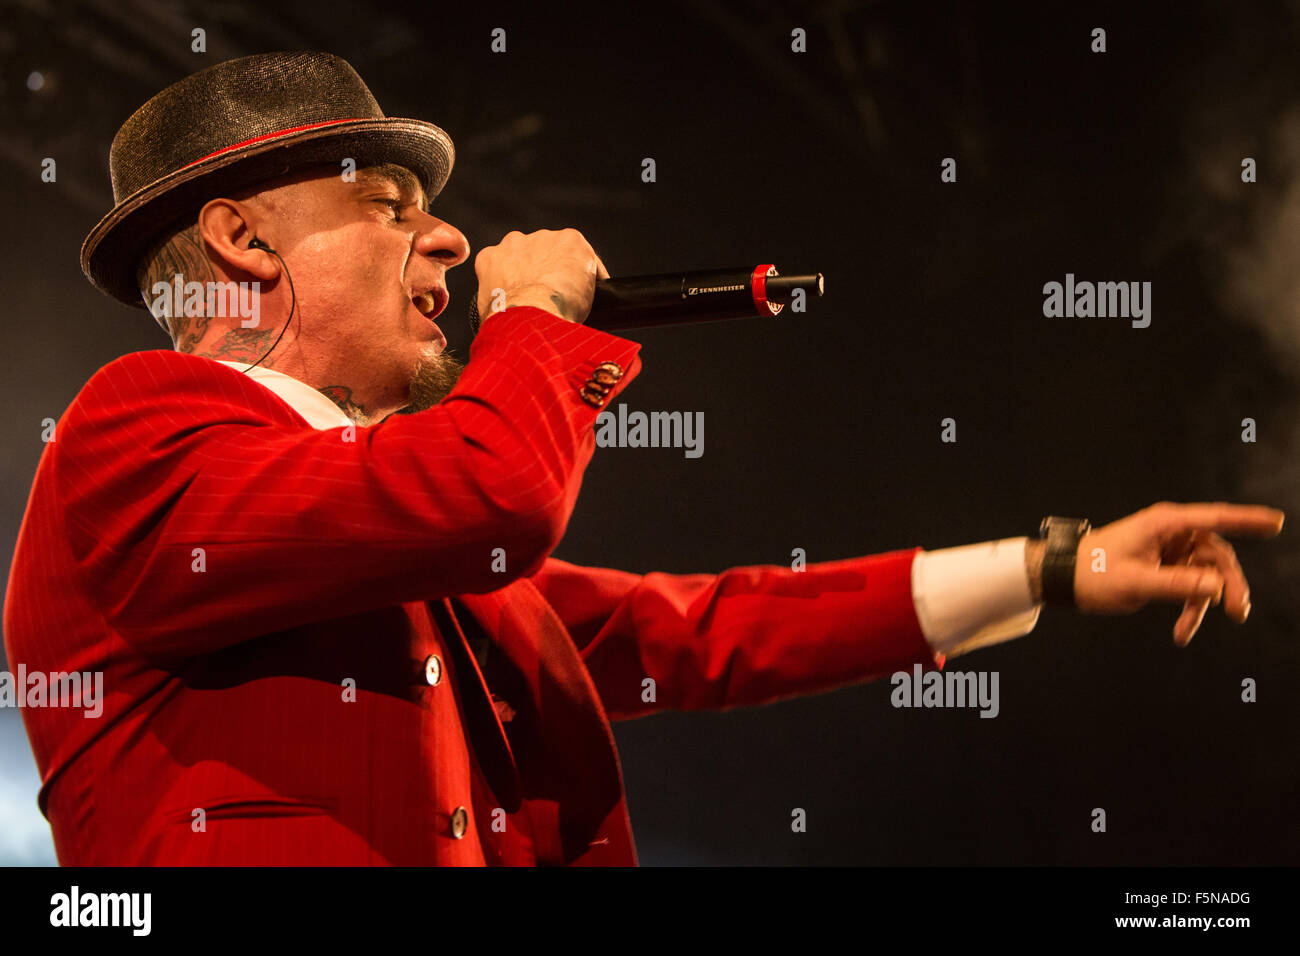 Fontaneto d'Agogna Italy. The Italian rapper and pop singer Alessandro Aleotti better known on stage as J-AX performs Stock Photo